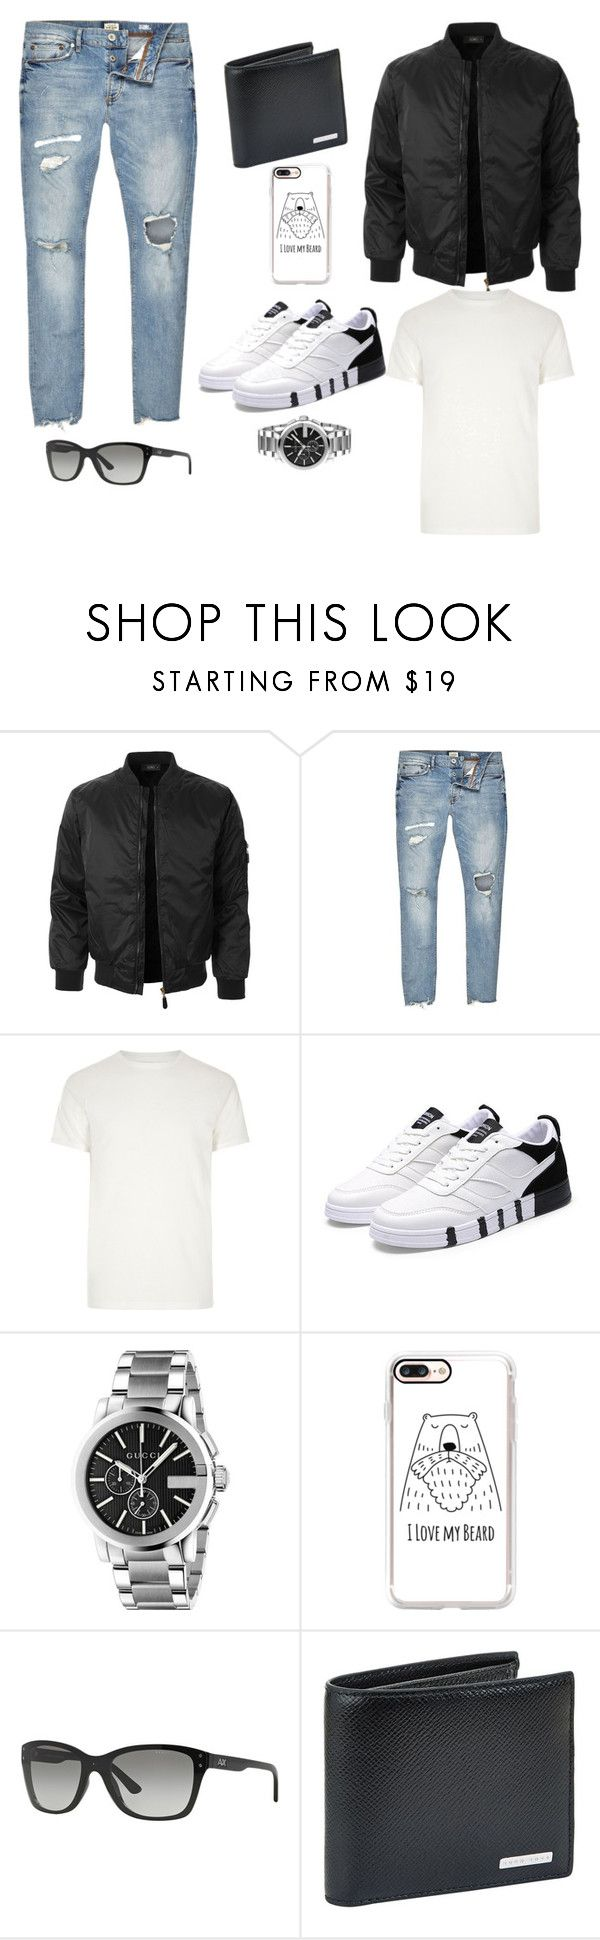 """""""Untitled #64"""" by maya-marc ❤ liked on Polyvore featuring LE3NO, River Island, Gucci, Casetify, Armani Exchange, BOSS Hugo Boss, men's fashion and menswear"""